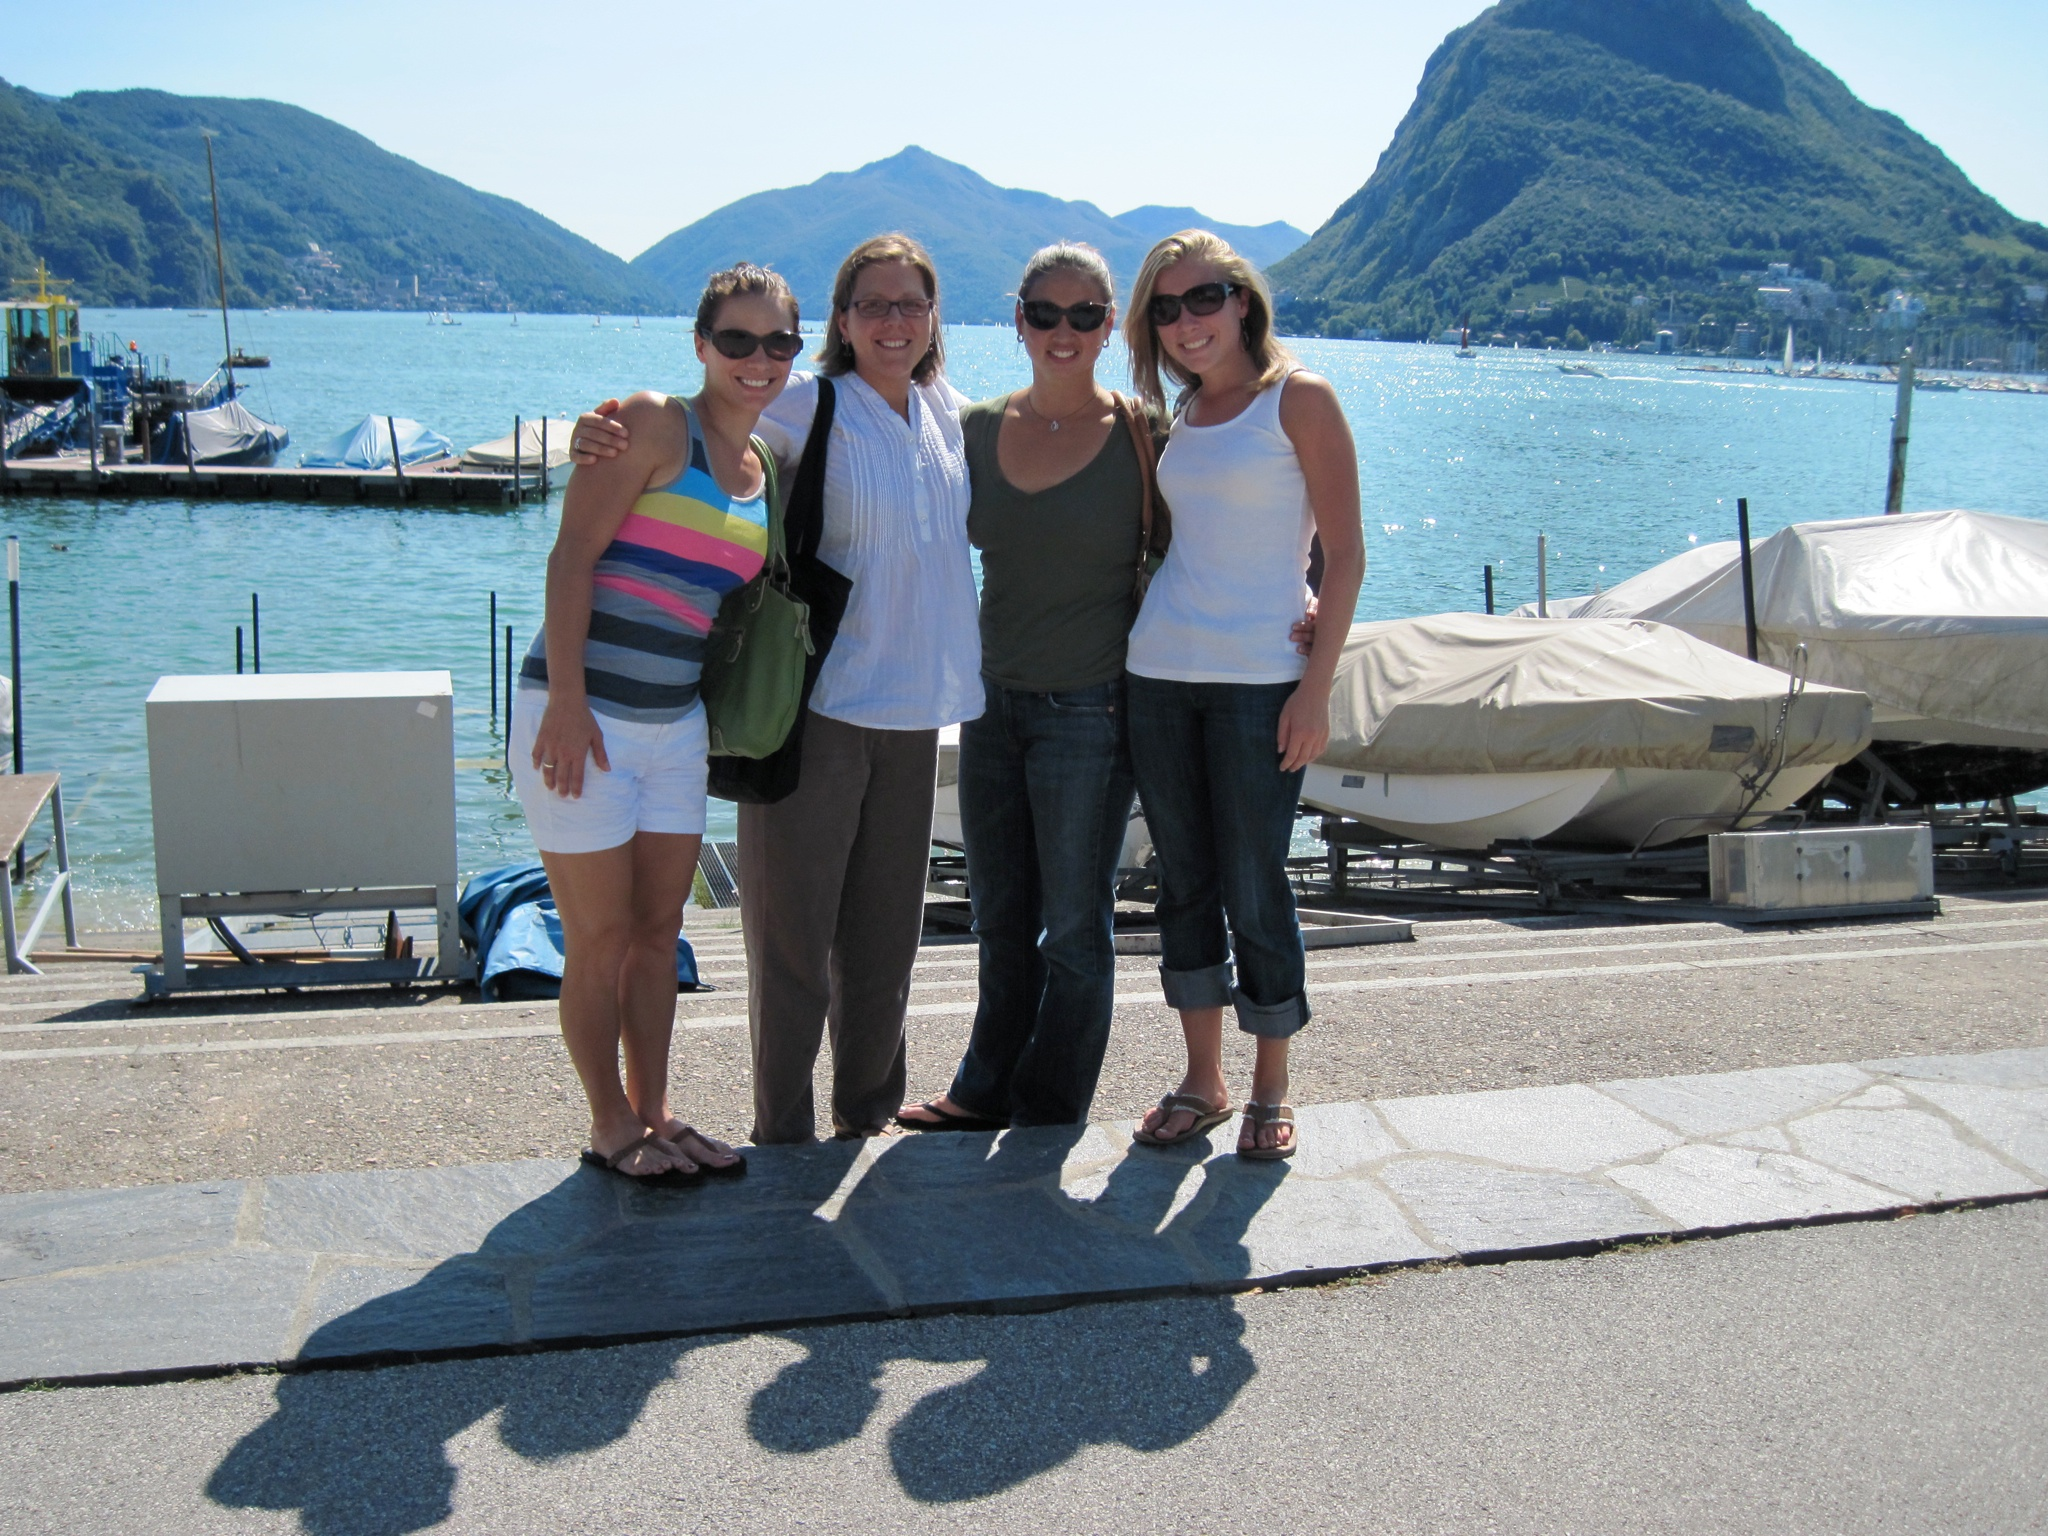 Lunch on Lake Lugano